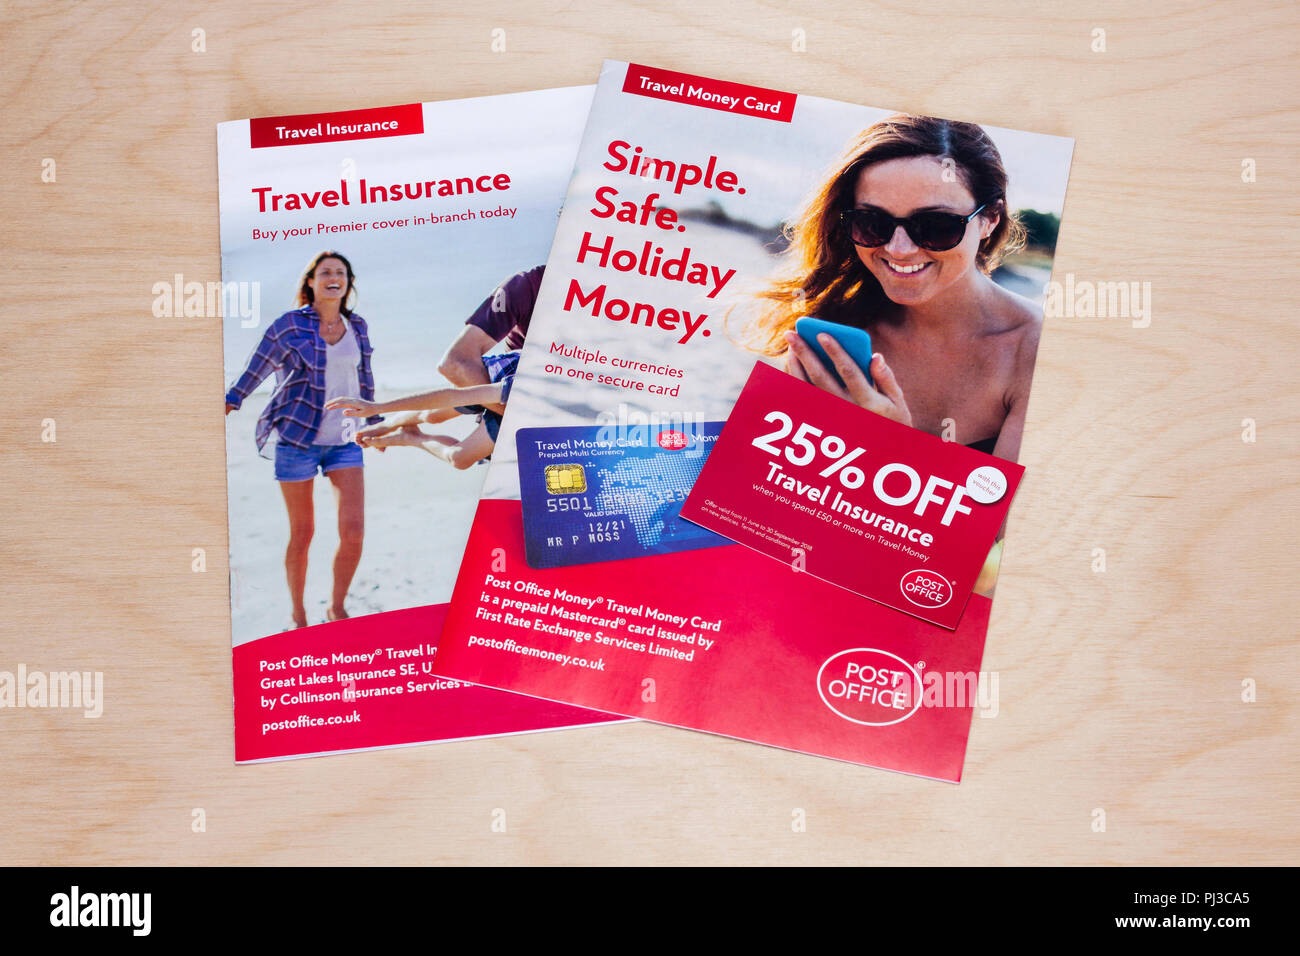 Travel insurance and holiday money leaflets from a UK post office - Stock Image